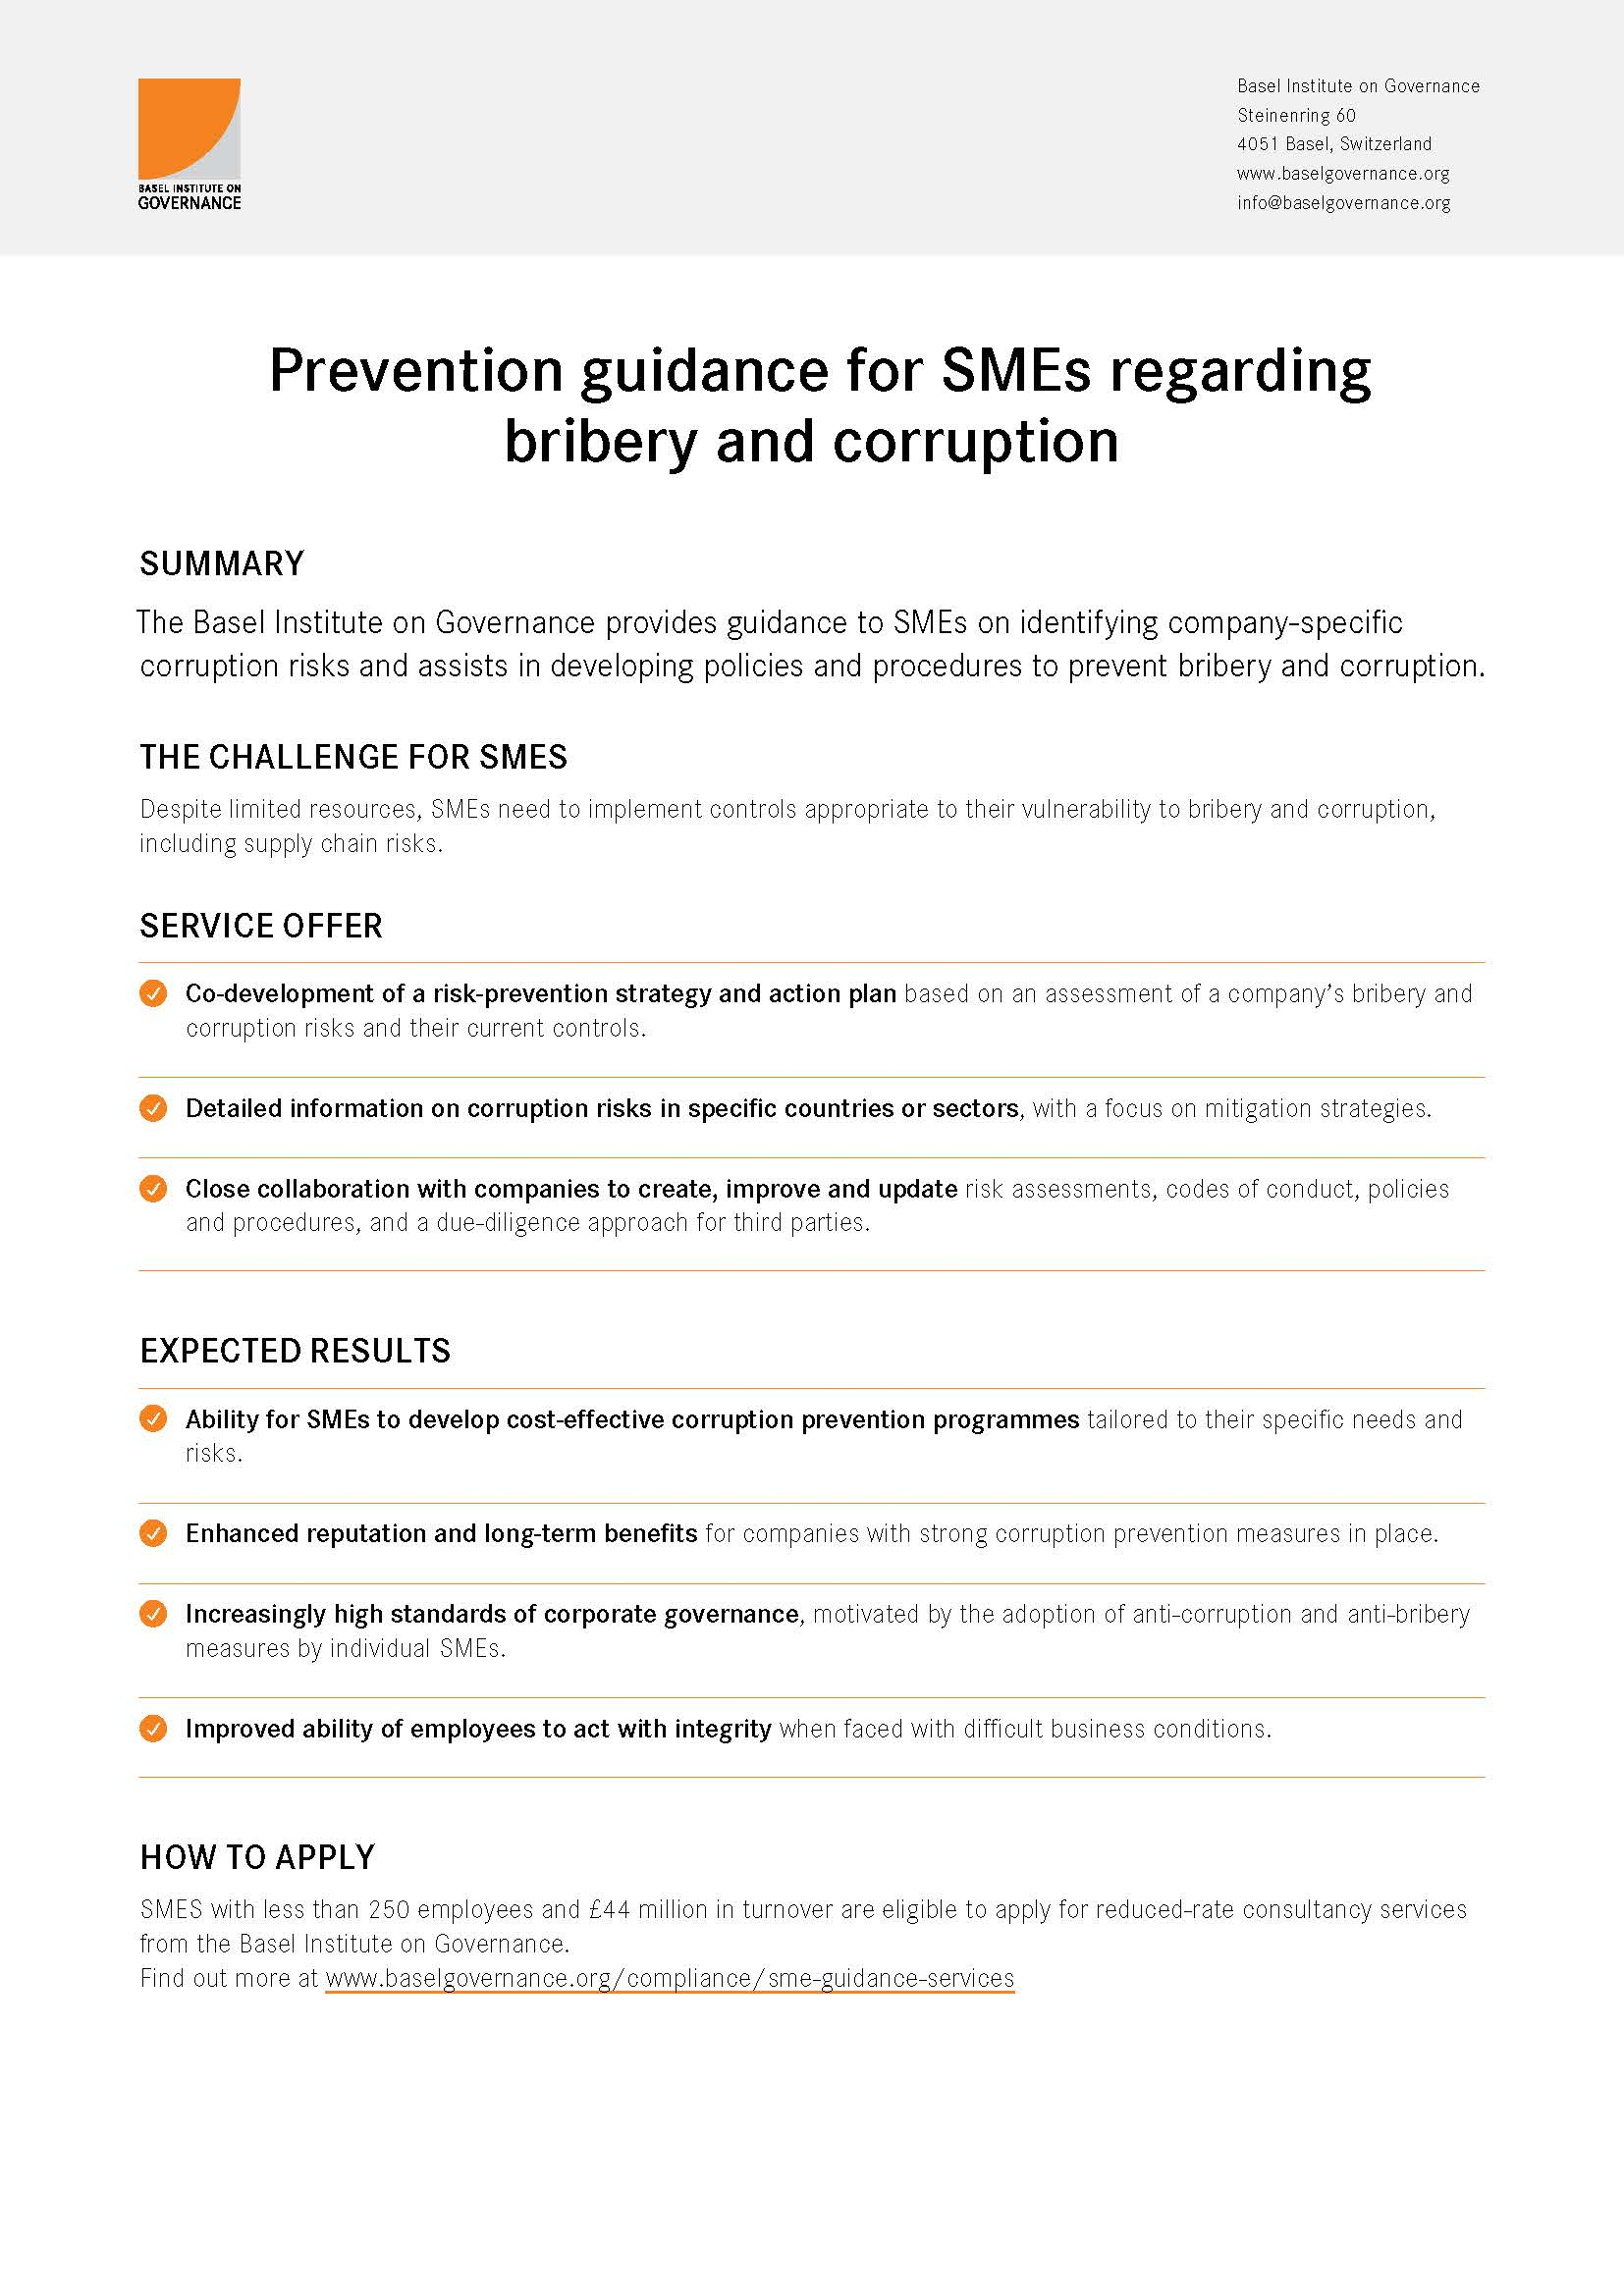 Prevention guidance for SMEs flyer